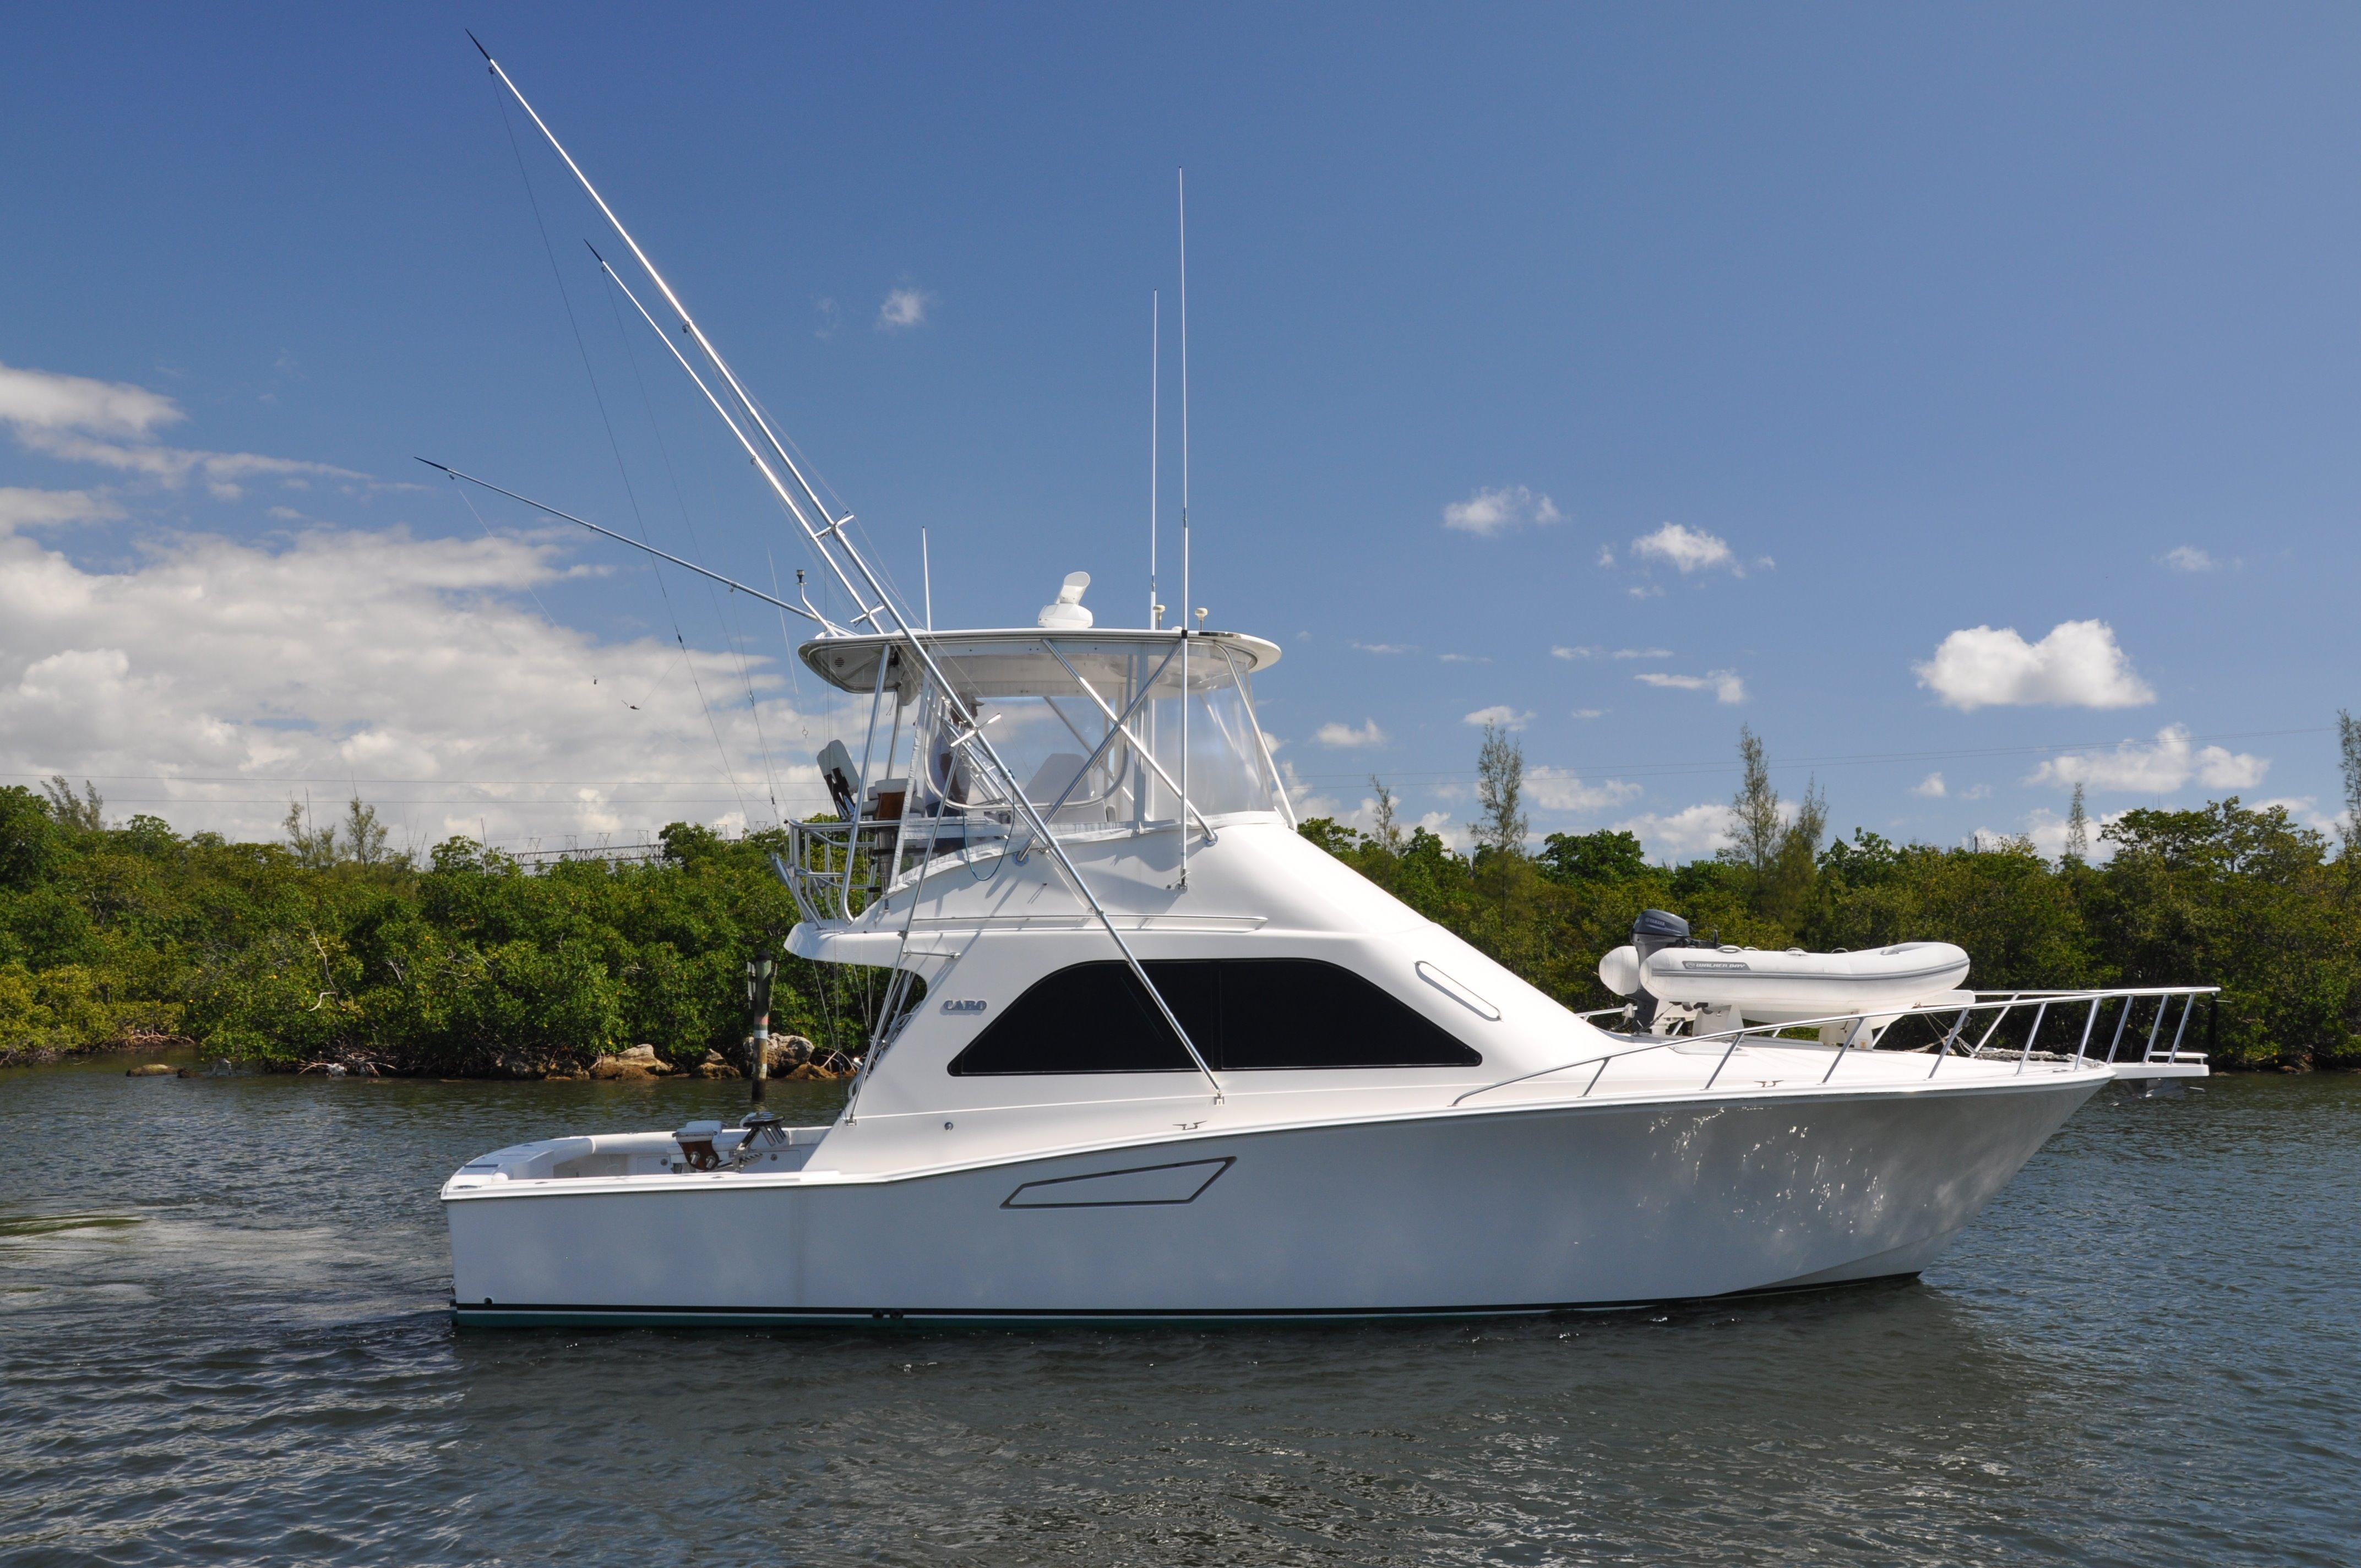 43 Cabo Yachts 2003 Danielle For Sale In Dania Beach